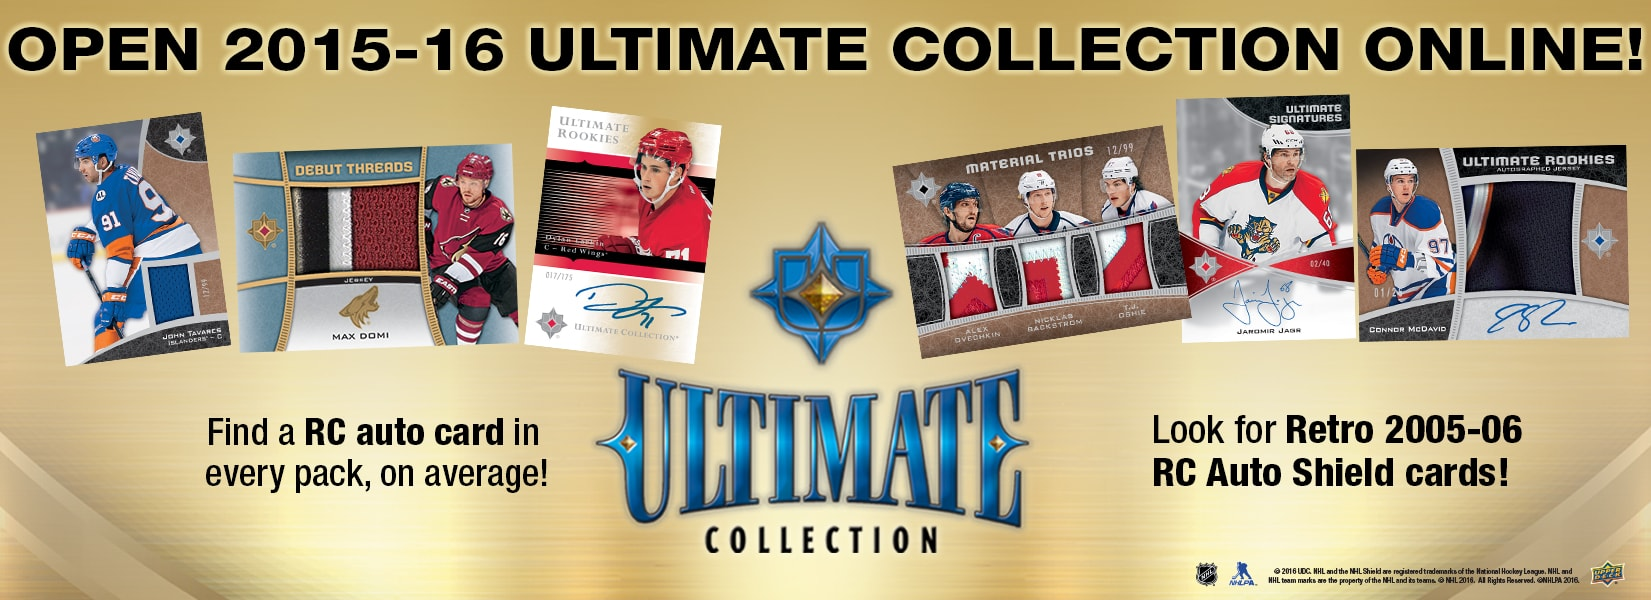 Open packs of UD Ultimate online